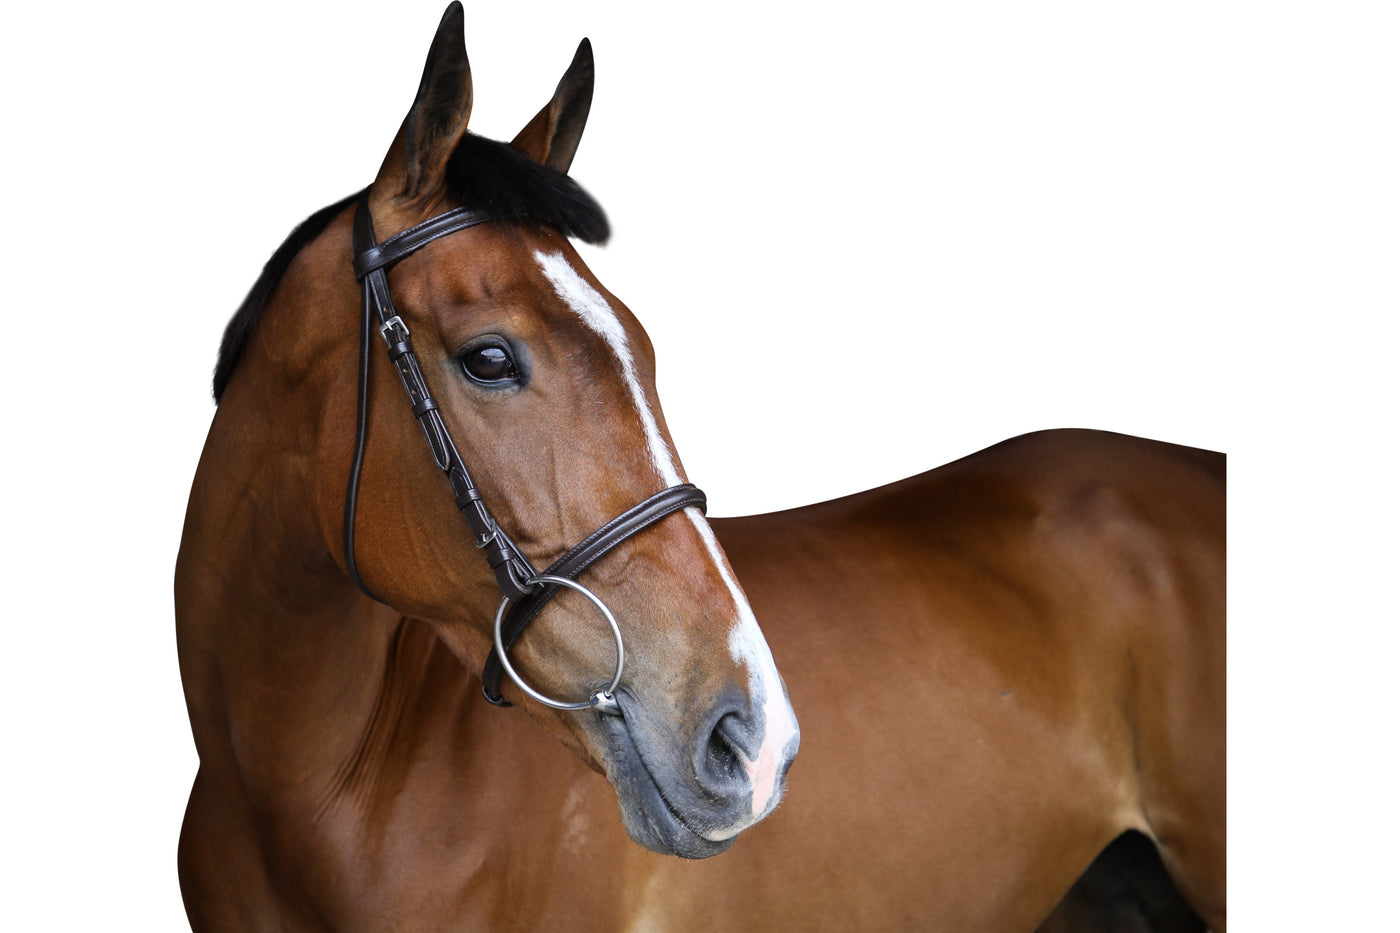 Race bridles